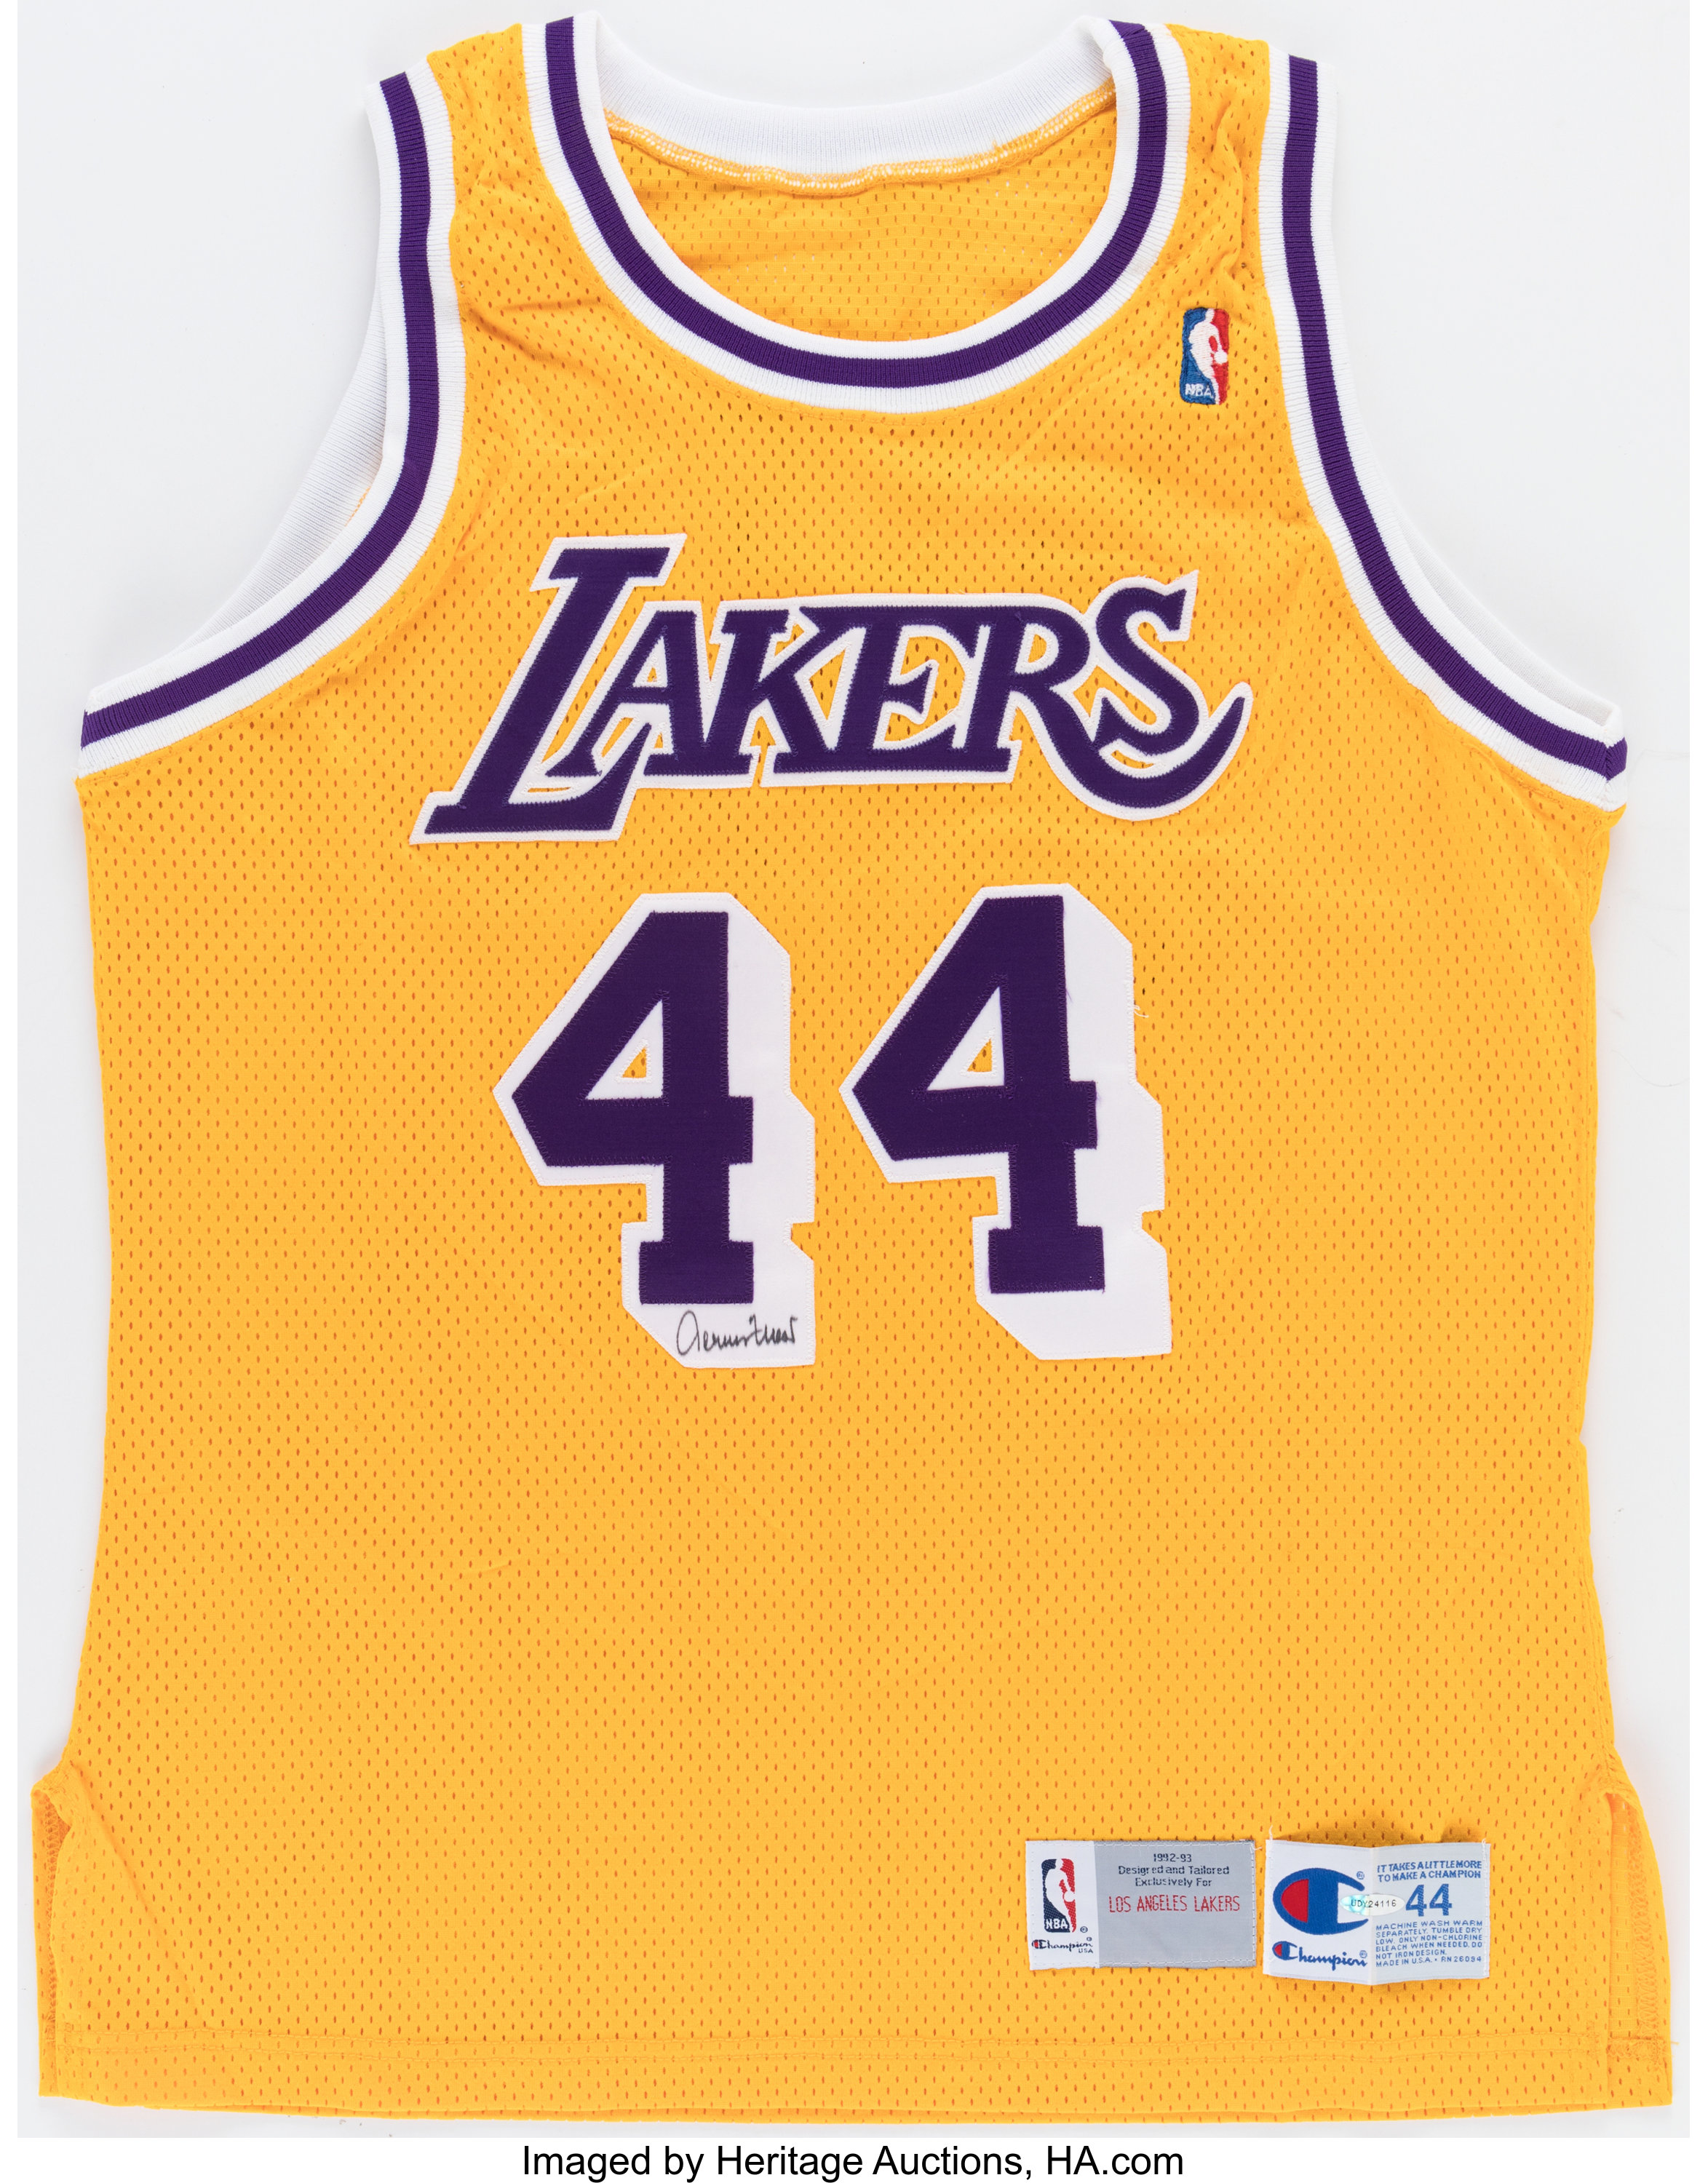 Jerry West Signed Los Angeles Lakers Jersey, Upper Deck   Lot ...